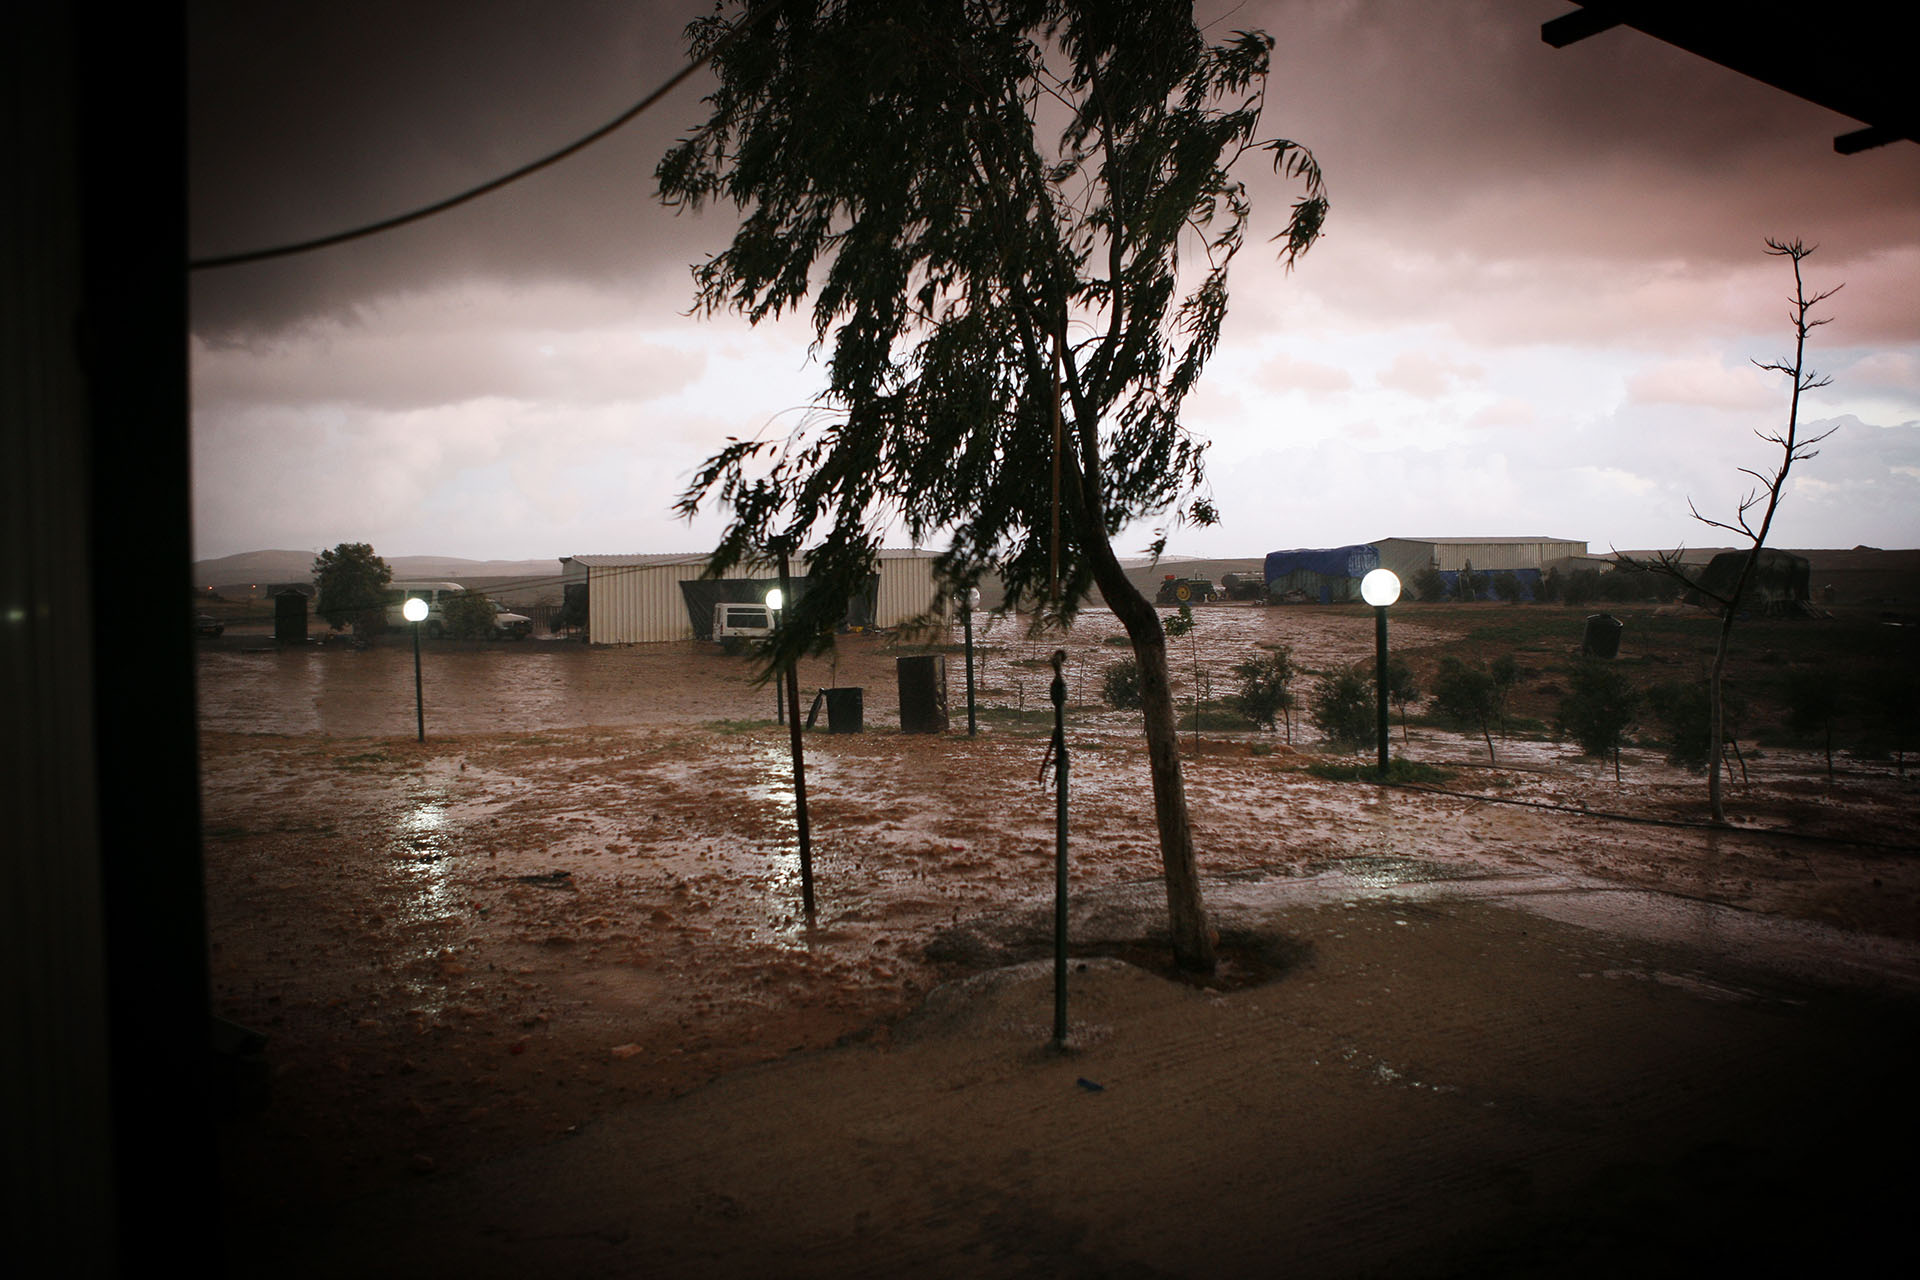 Al Araqib during a storm. Lamps powered by solar energy mark the paths leading to different homes. February 2010